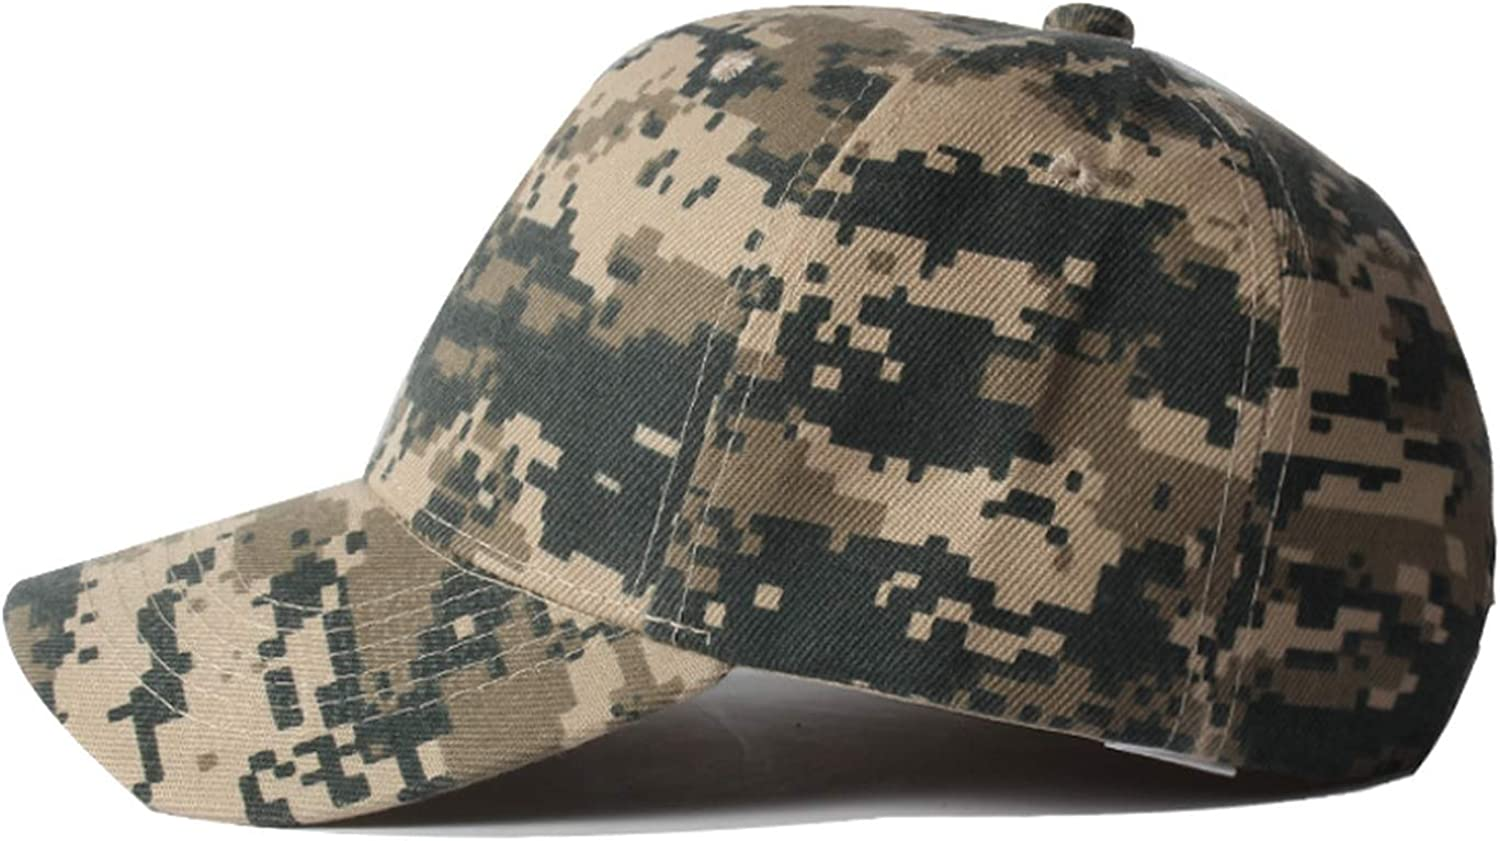 Fashion Baseball Cap Men Caps Women Casquette Hats for Men Bone Gorras Embroidered Dad Camouflage Cap